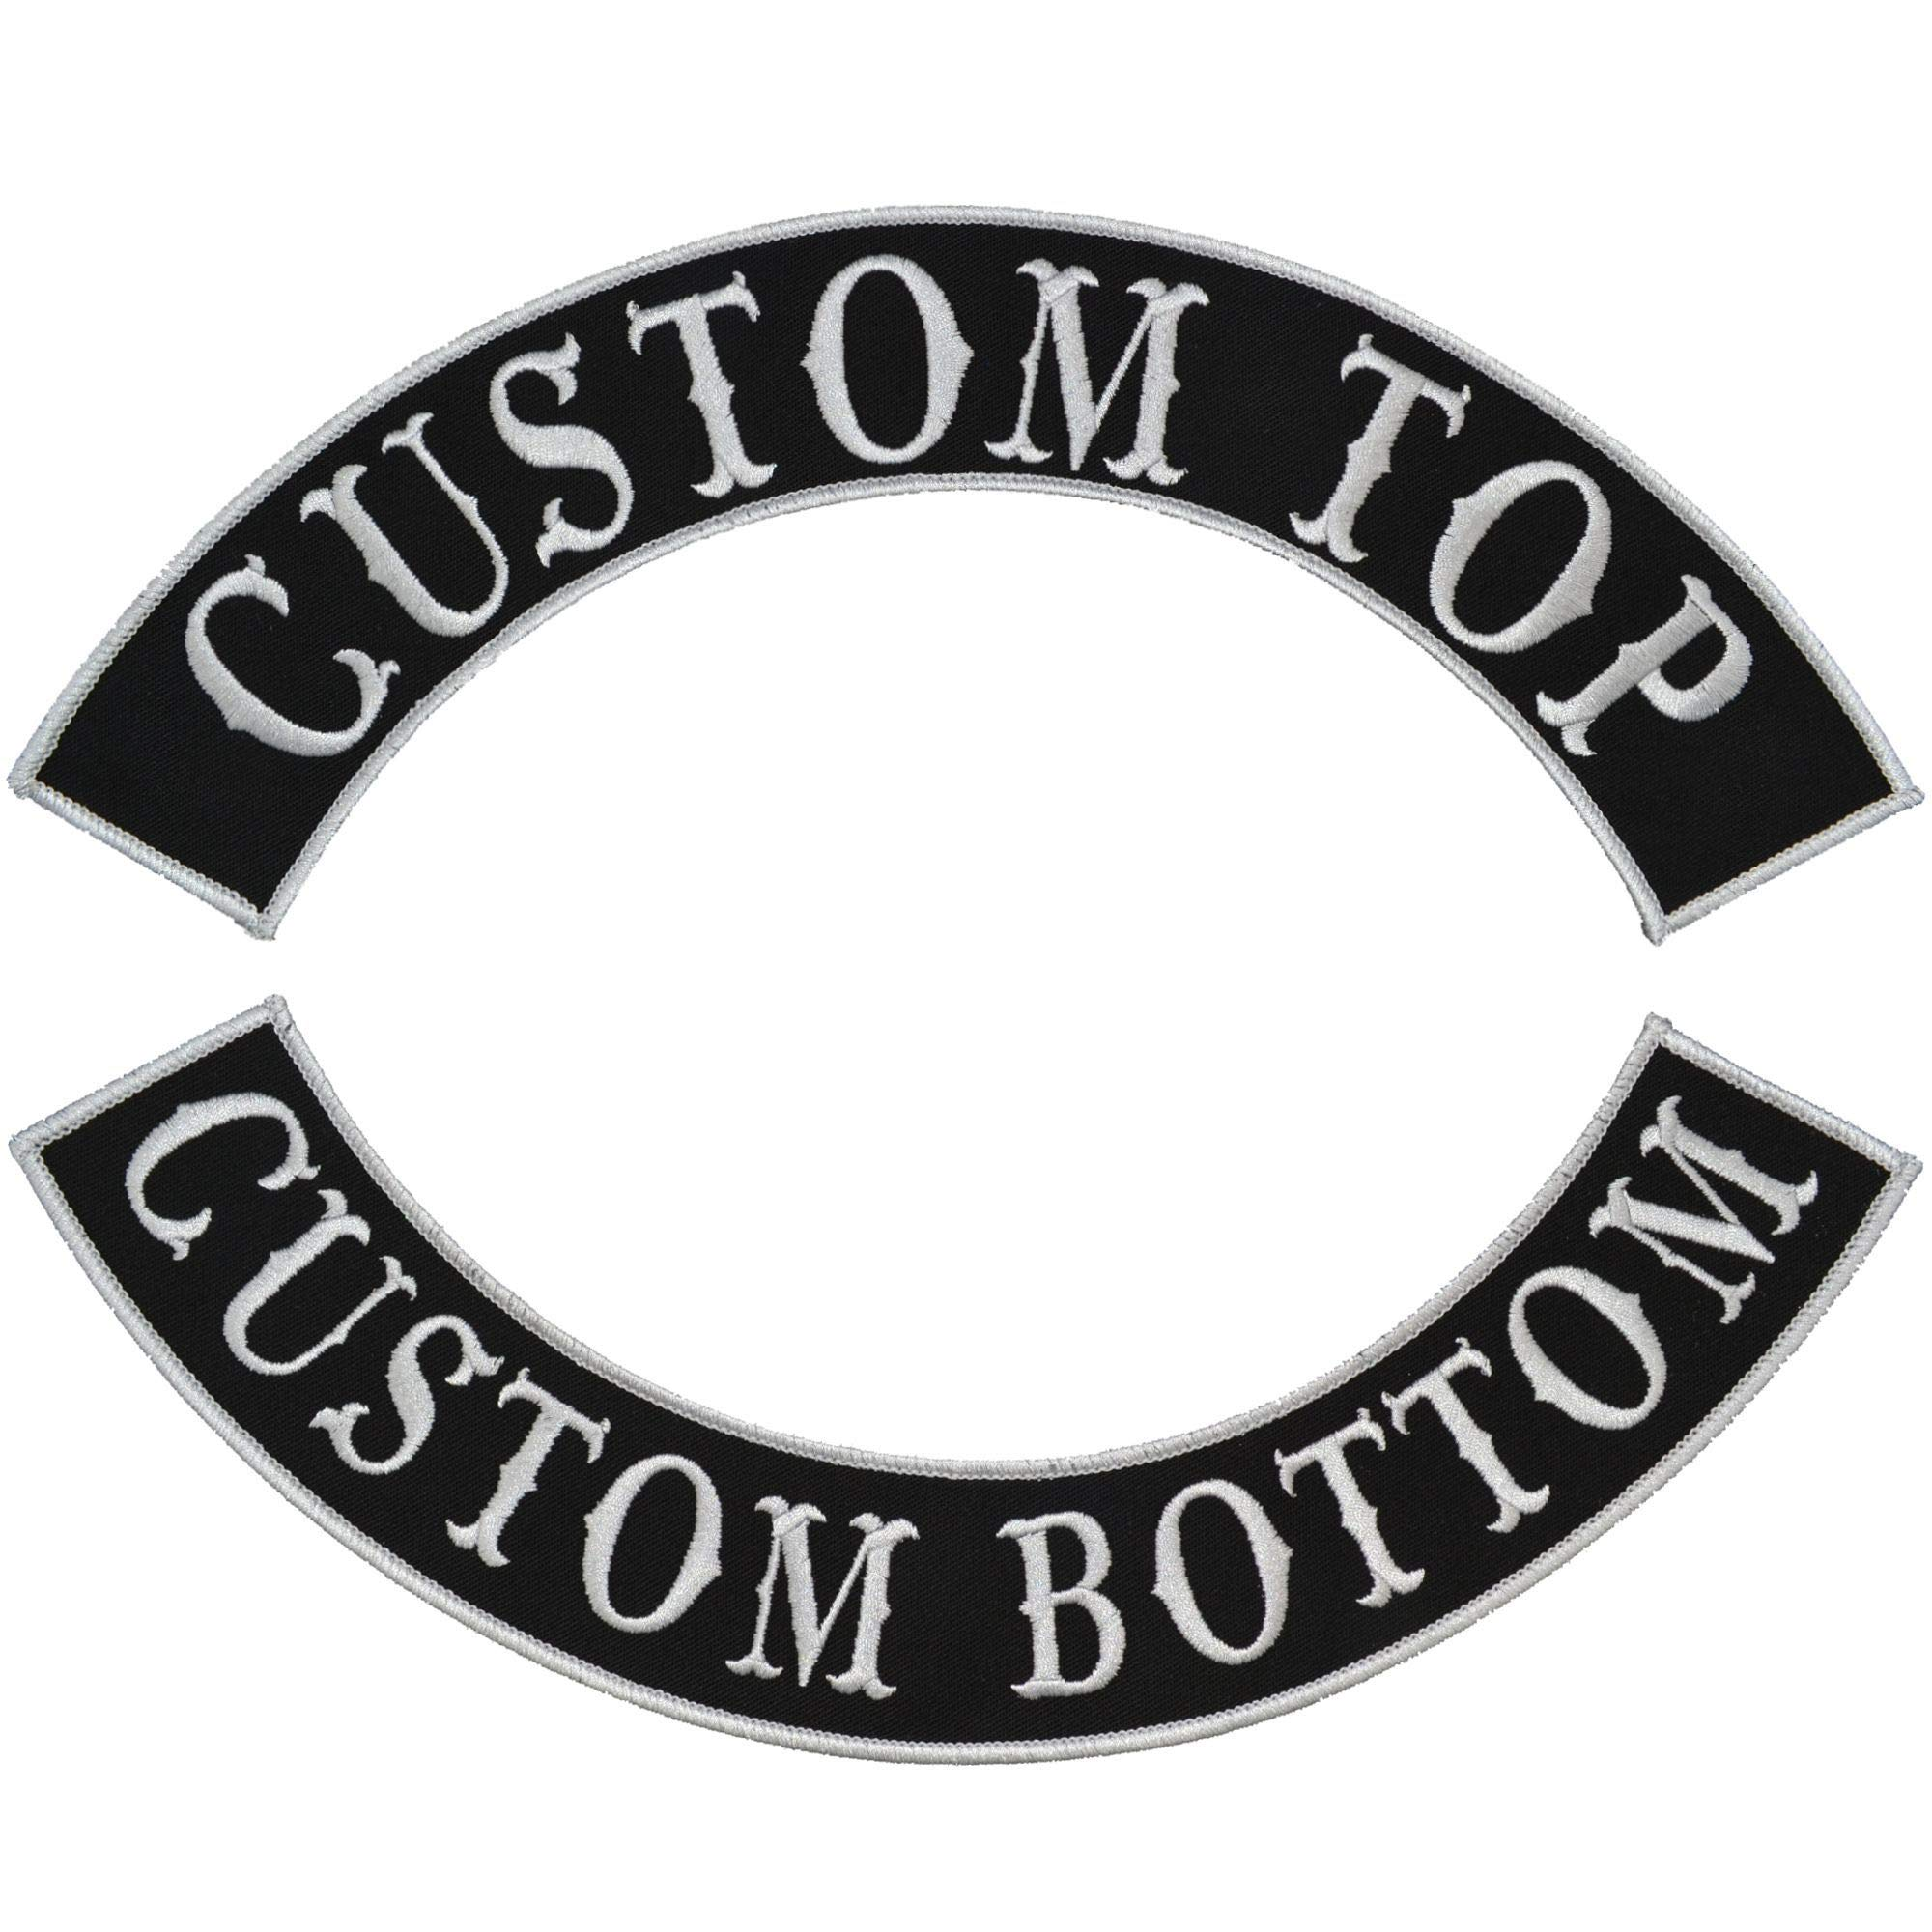 Custom Biker Vest Patch - Top and Bottom Arch Style Tab and Rocker - Sew On by Tactical Gear Junkie